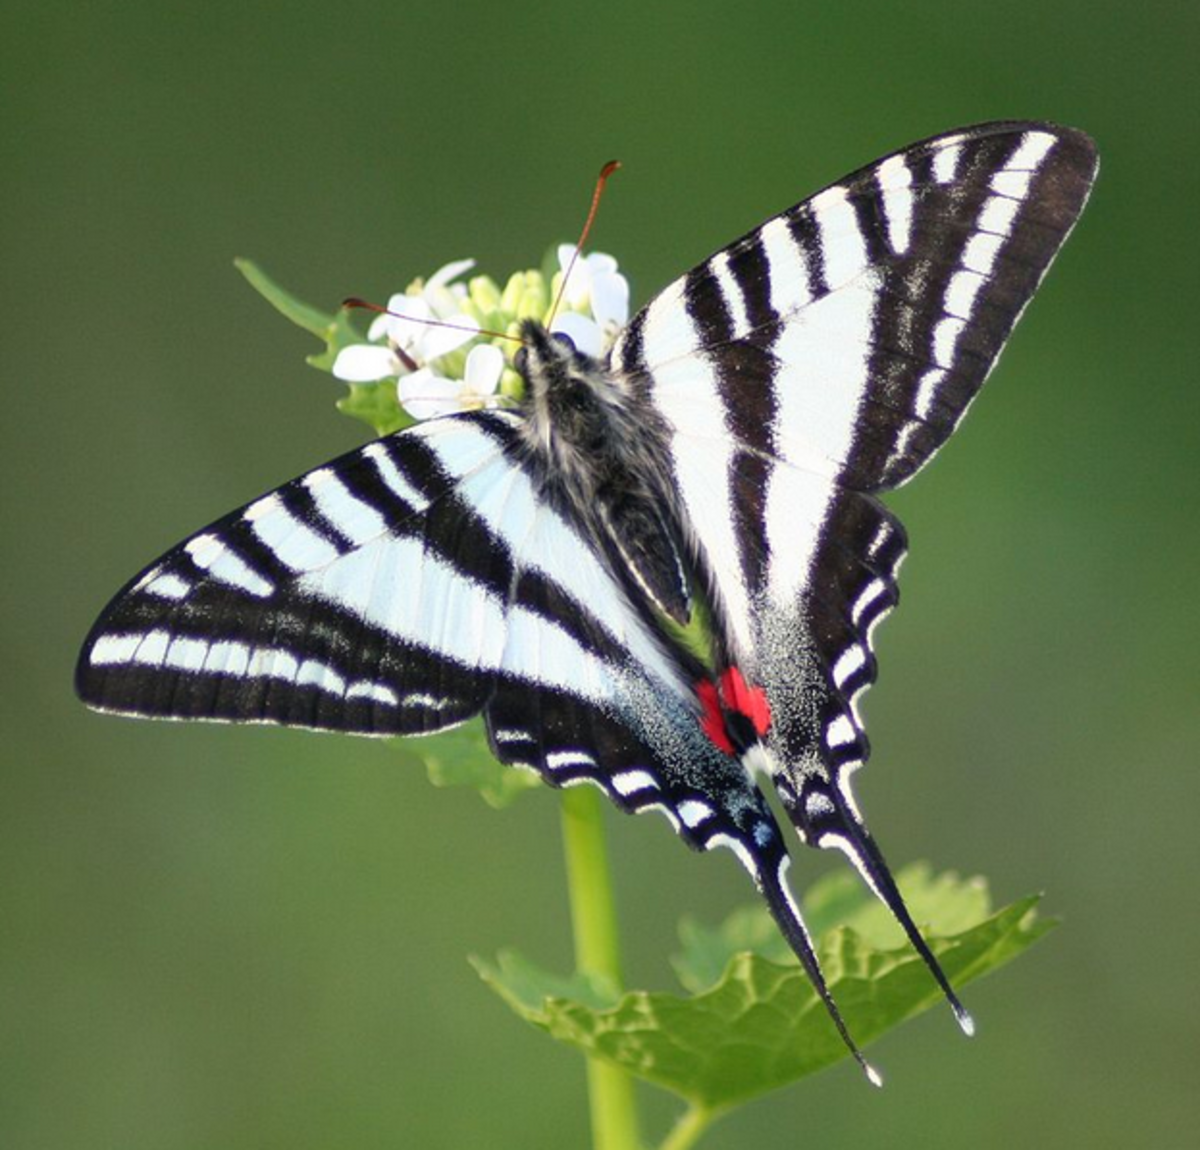 The State Butterfly of Tennessee: the Zebra Swallowtail